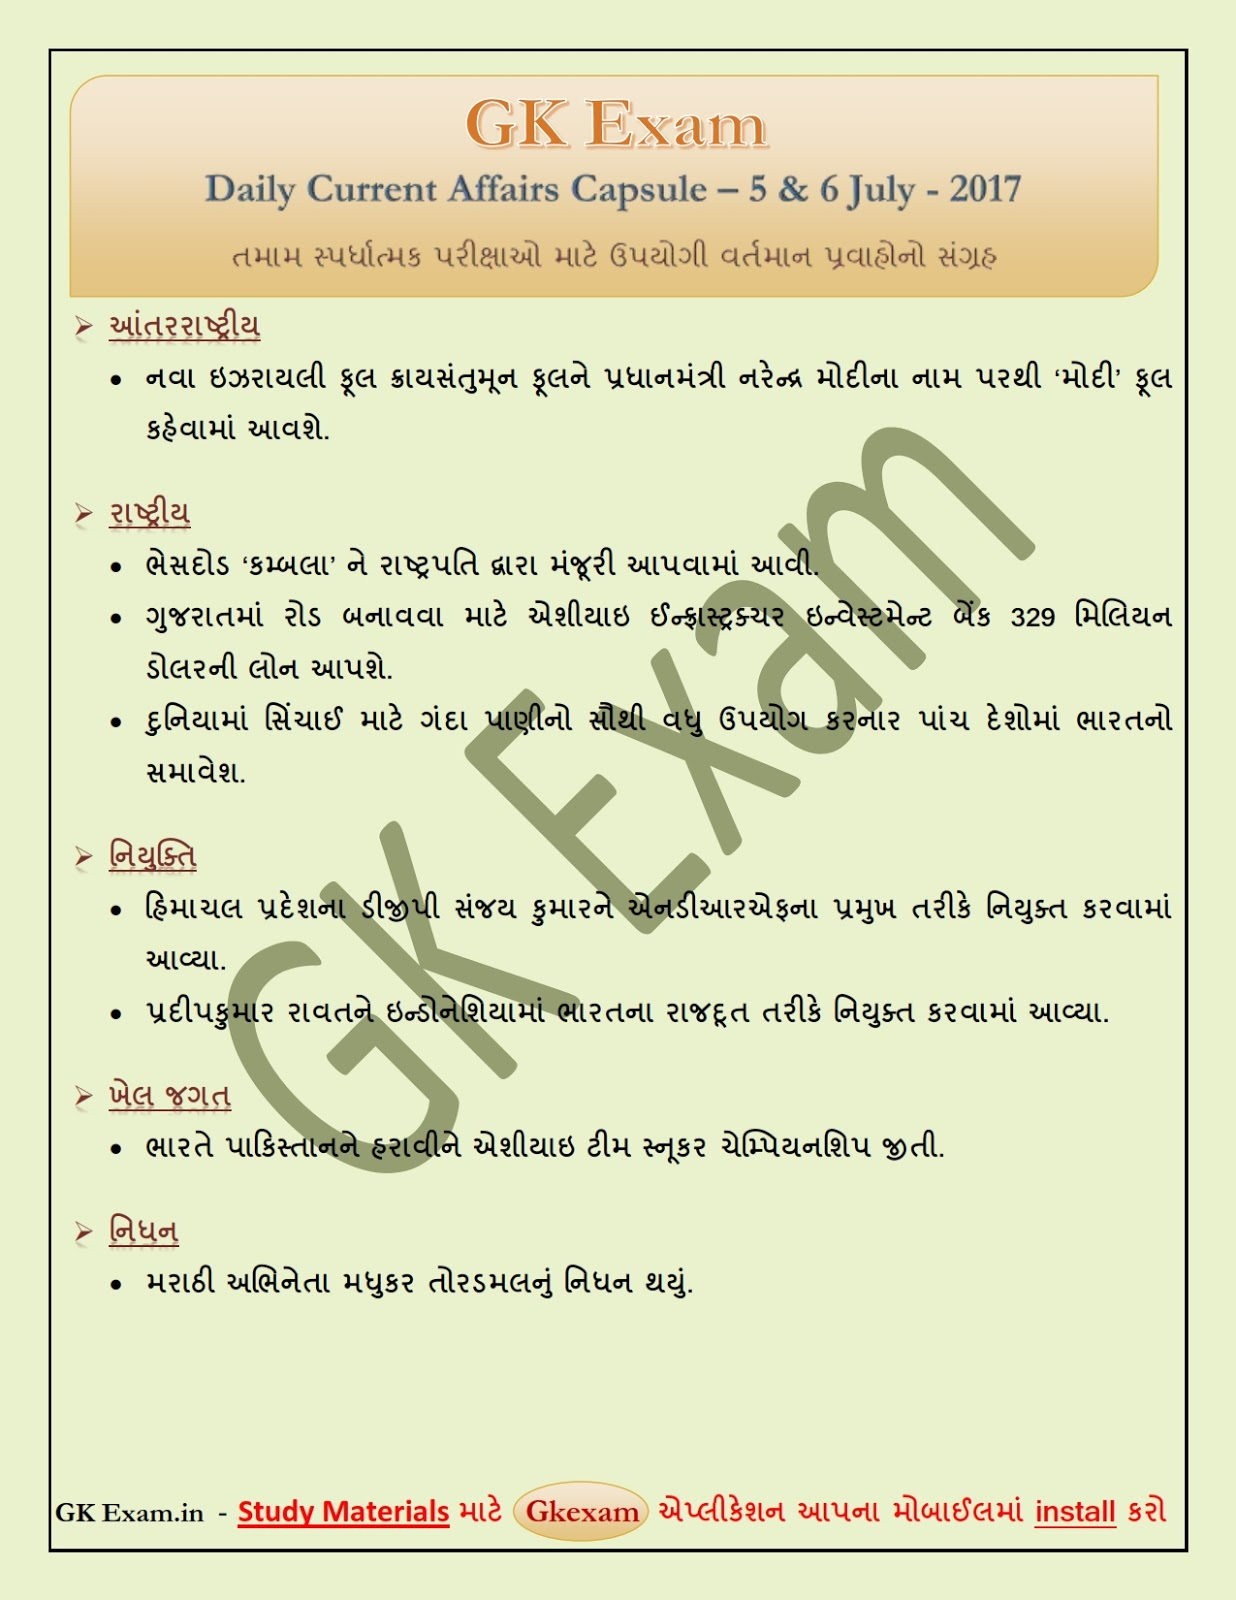 current essays for competitive exams Comprehensive up-to-date notes & study material on essay for various competitive exams essay study material for competitive exams-updated for 2018-2019 changes essay for competitive exams: comprehensive, point-wise and updated study material and exam notes  examrace- latest exam updates & current-affairs.